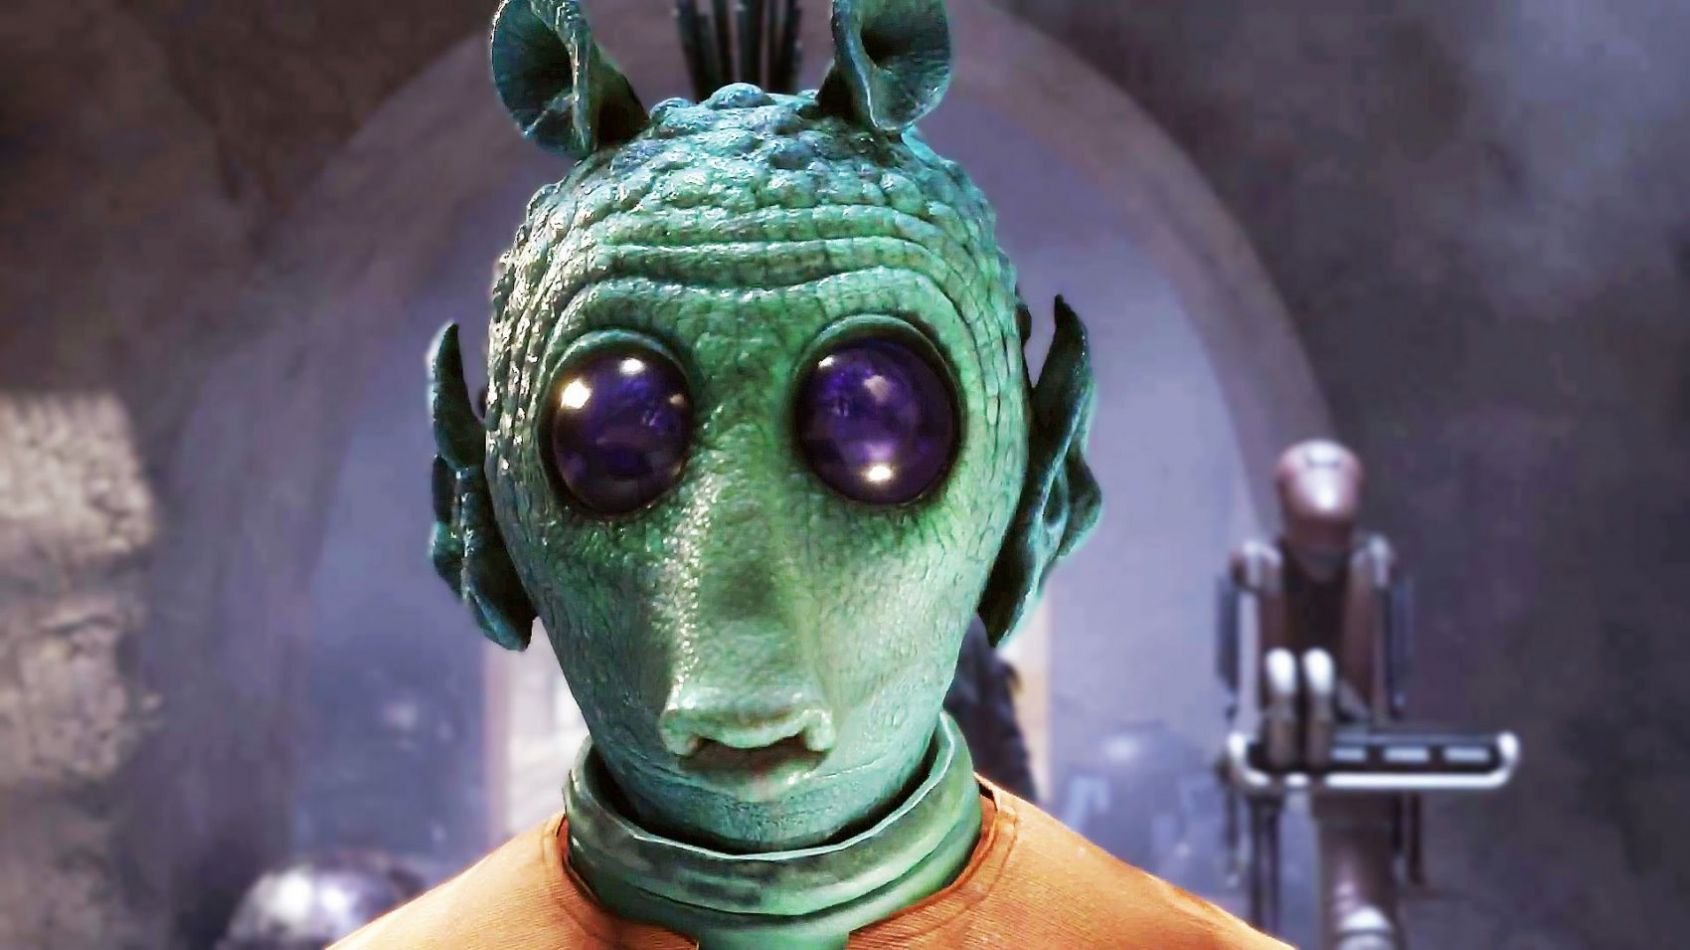 Greedo personnage du mois dans Galaxy of Heroes